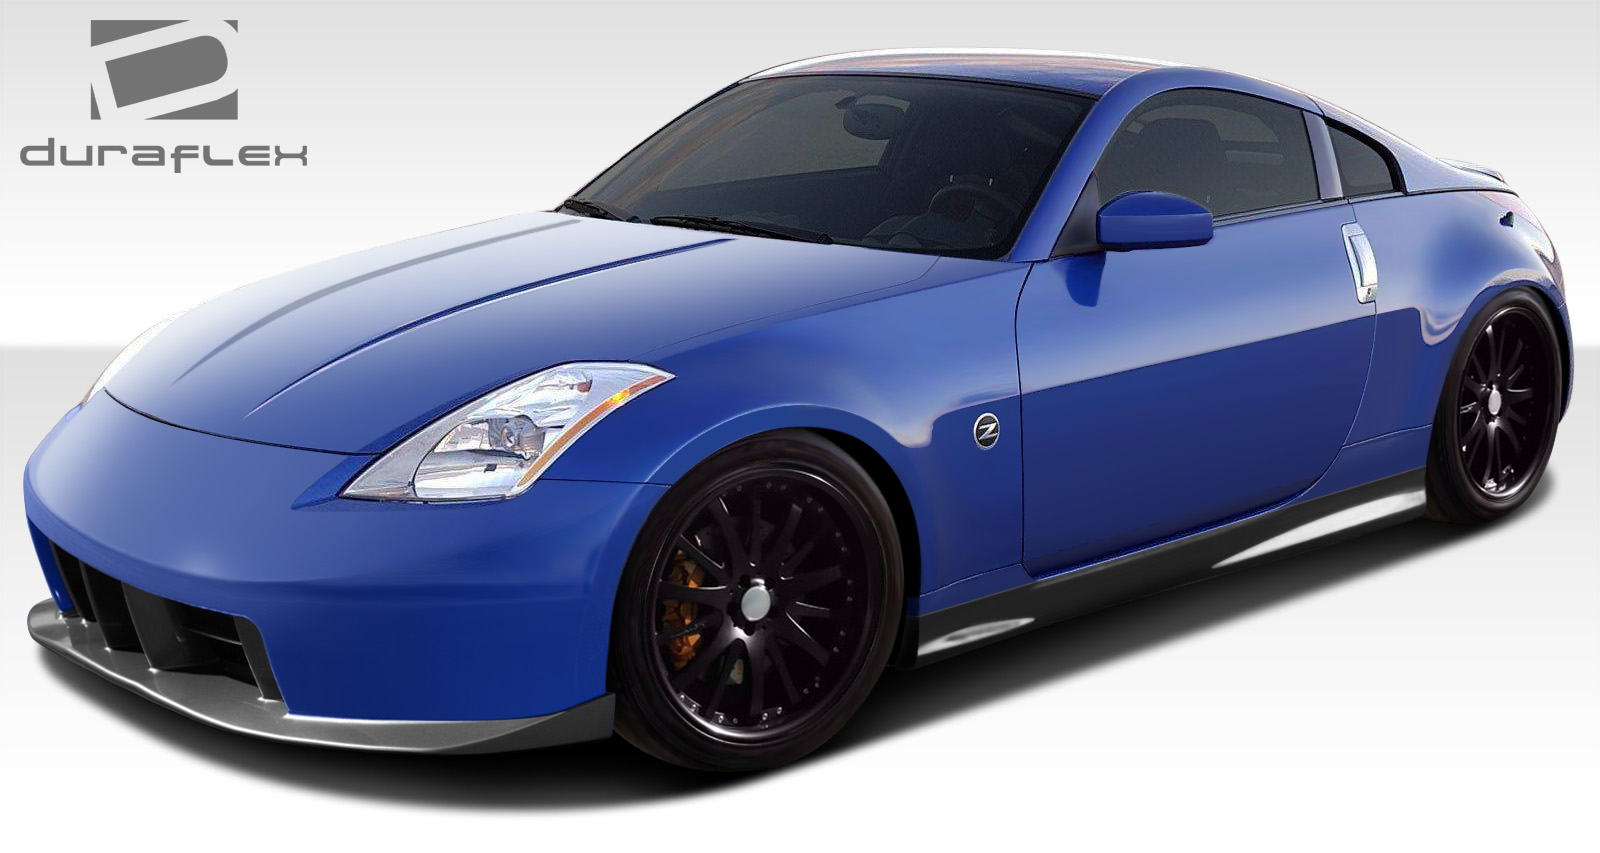 Extreme Dimensions Duraflex Replacement for 2003-2008 Nissan 350Z Z33 AM-S GT Front Bumper Cover 1 Piece